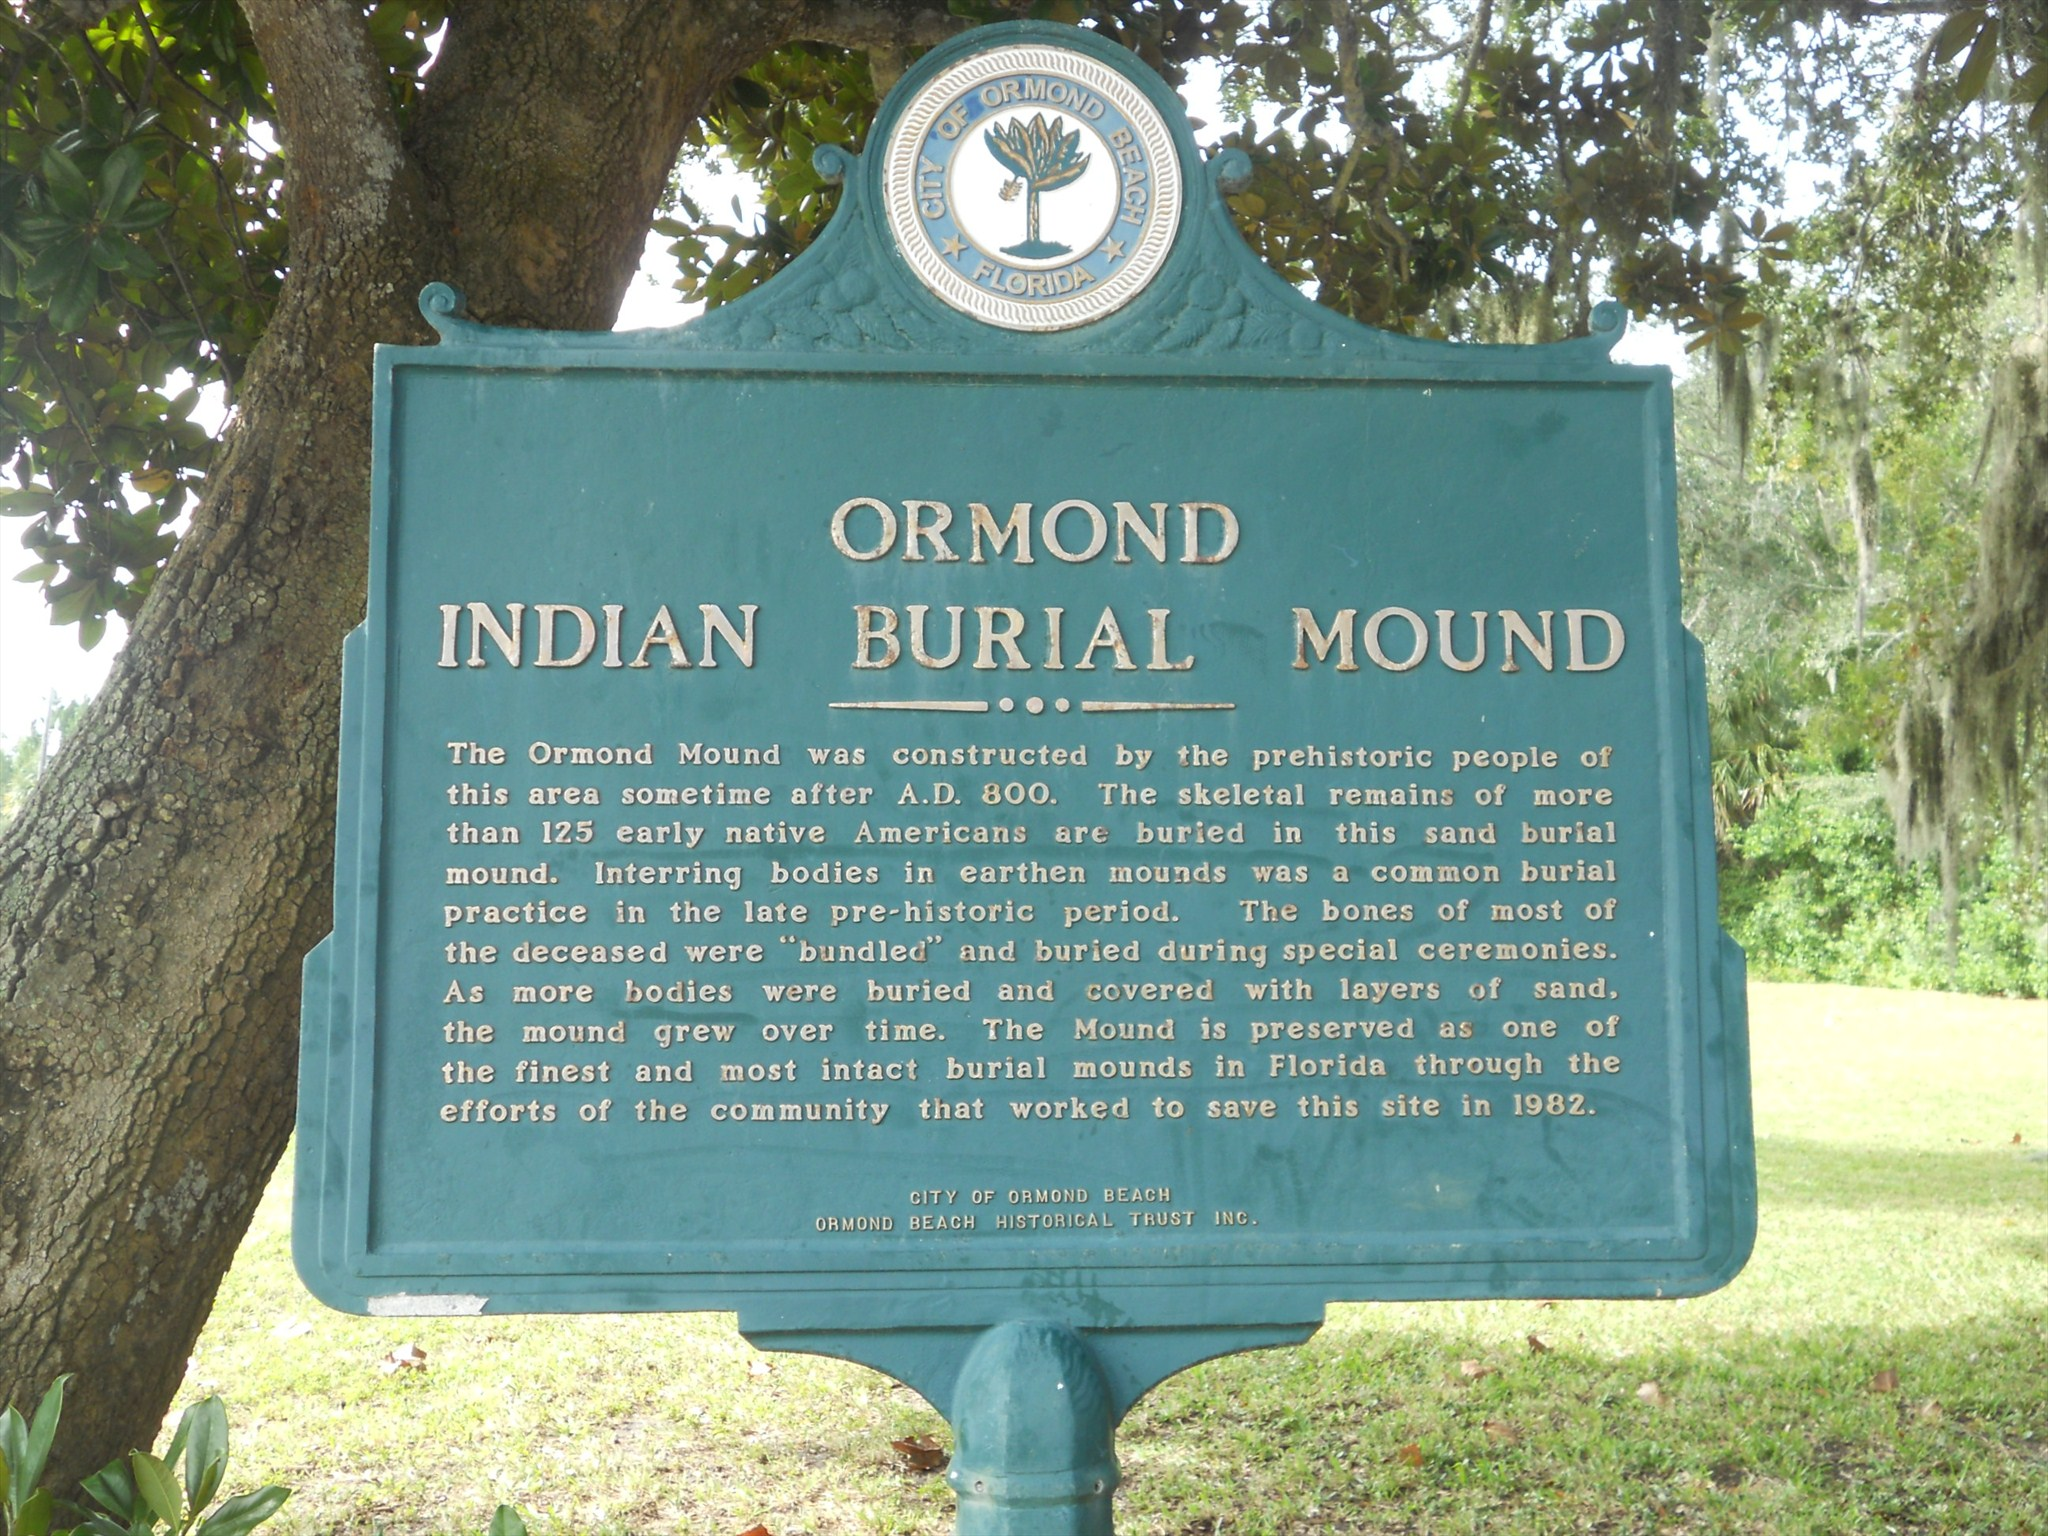 Ormond Indian Burial Mound Historical Marker